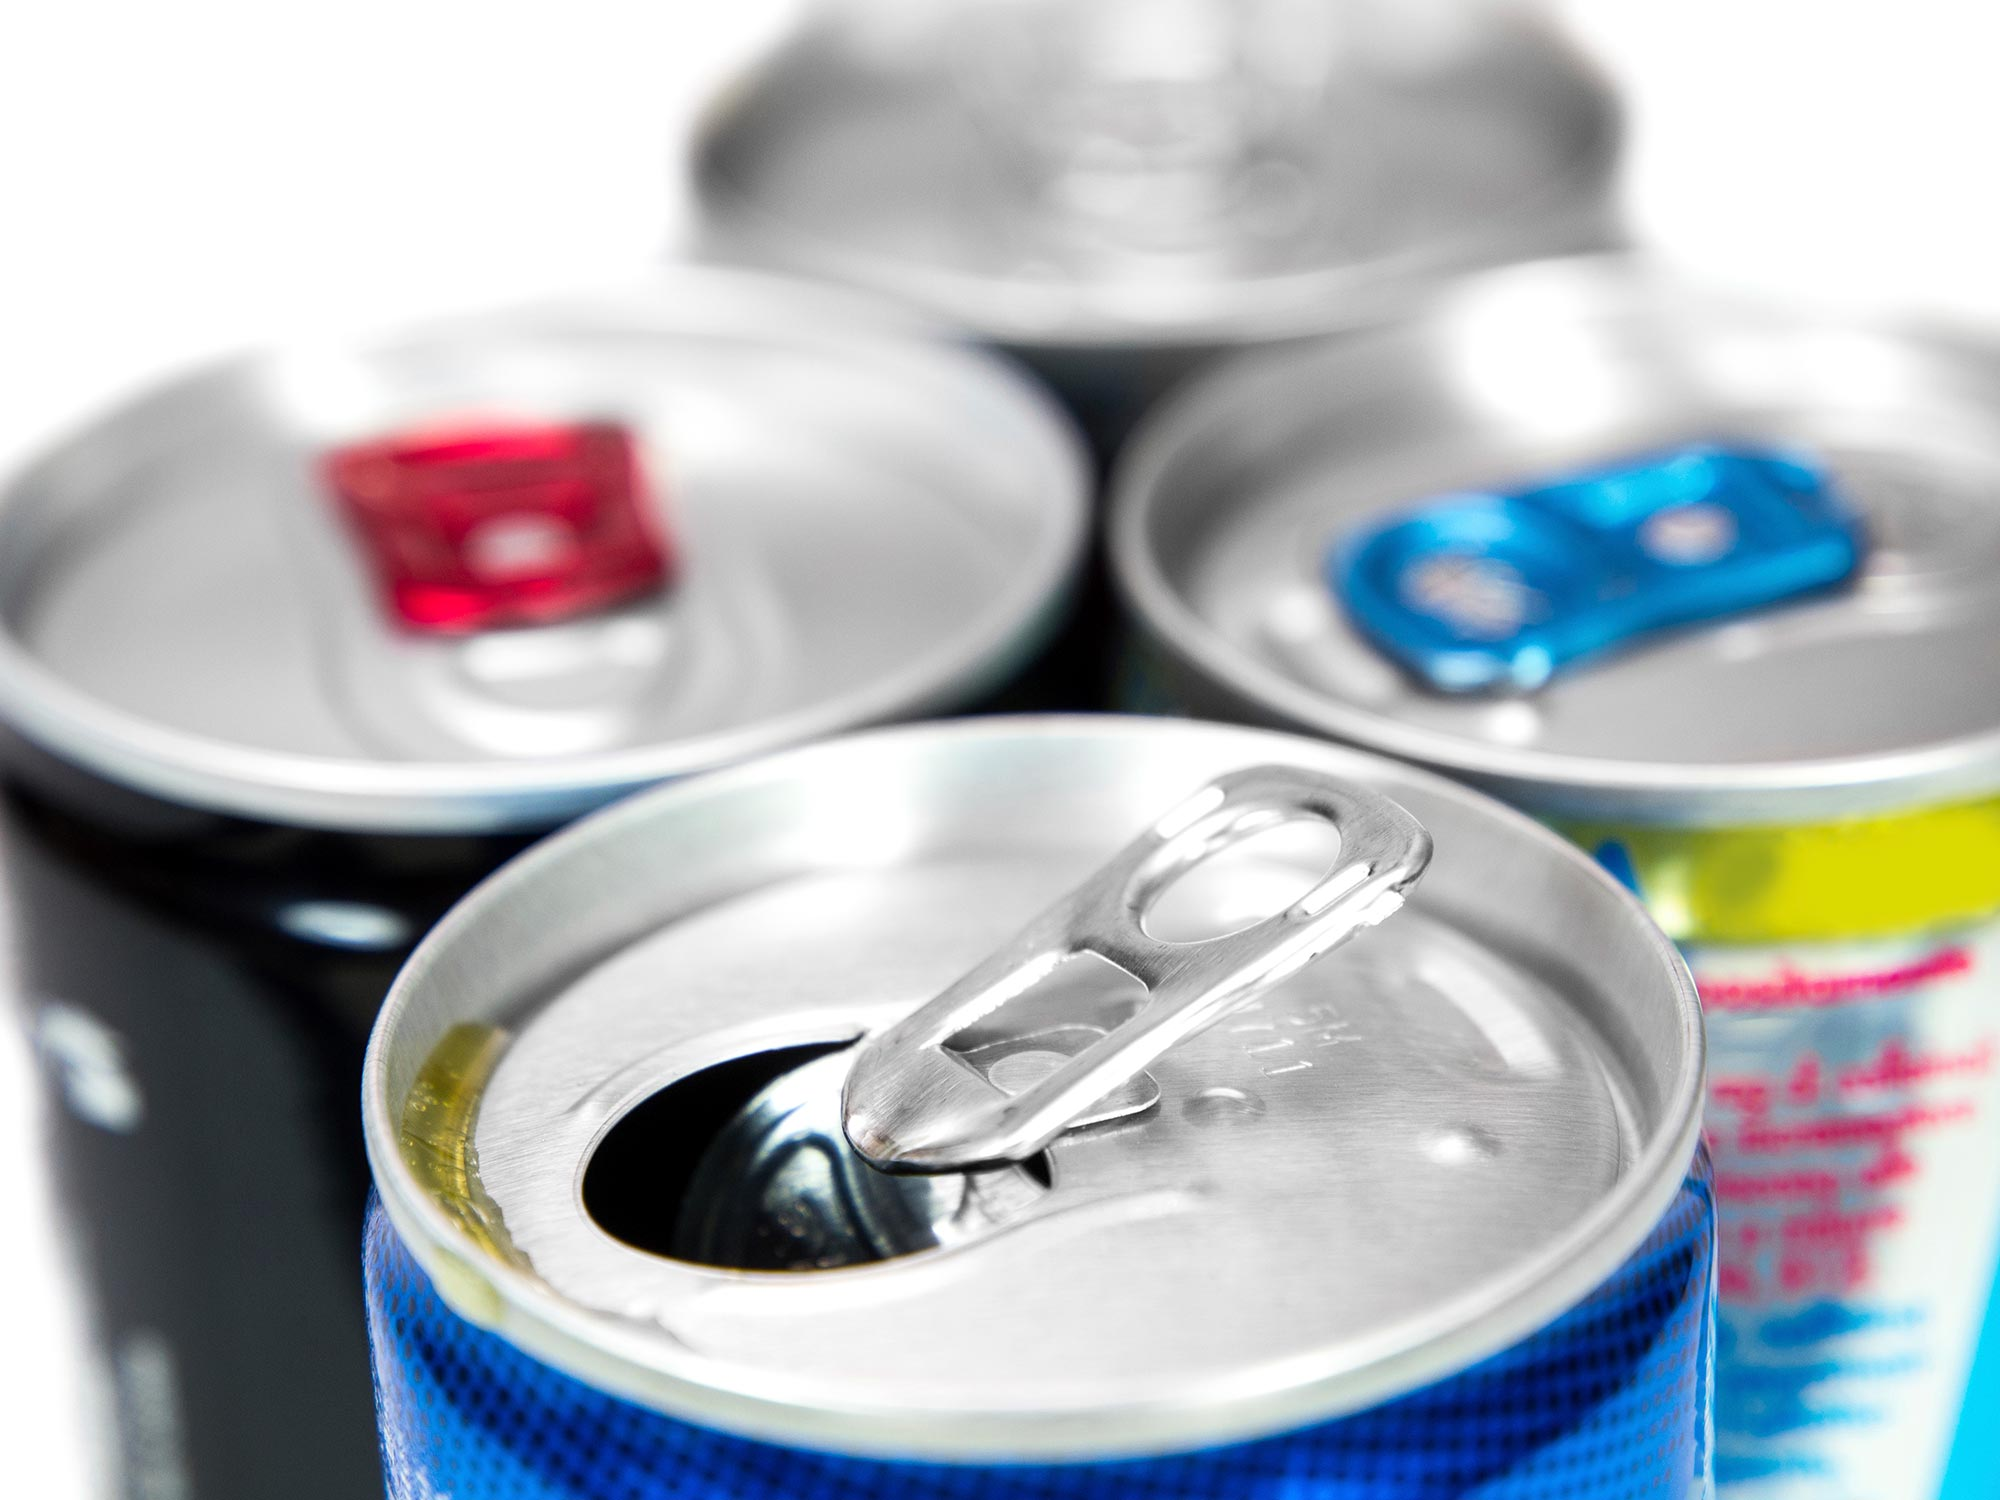 Heavy Energy Drink Consumption Linked to Heart Failure in 21-Year-Old Man